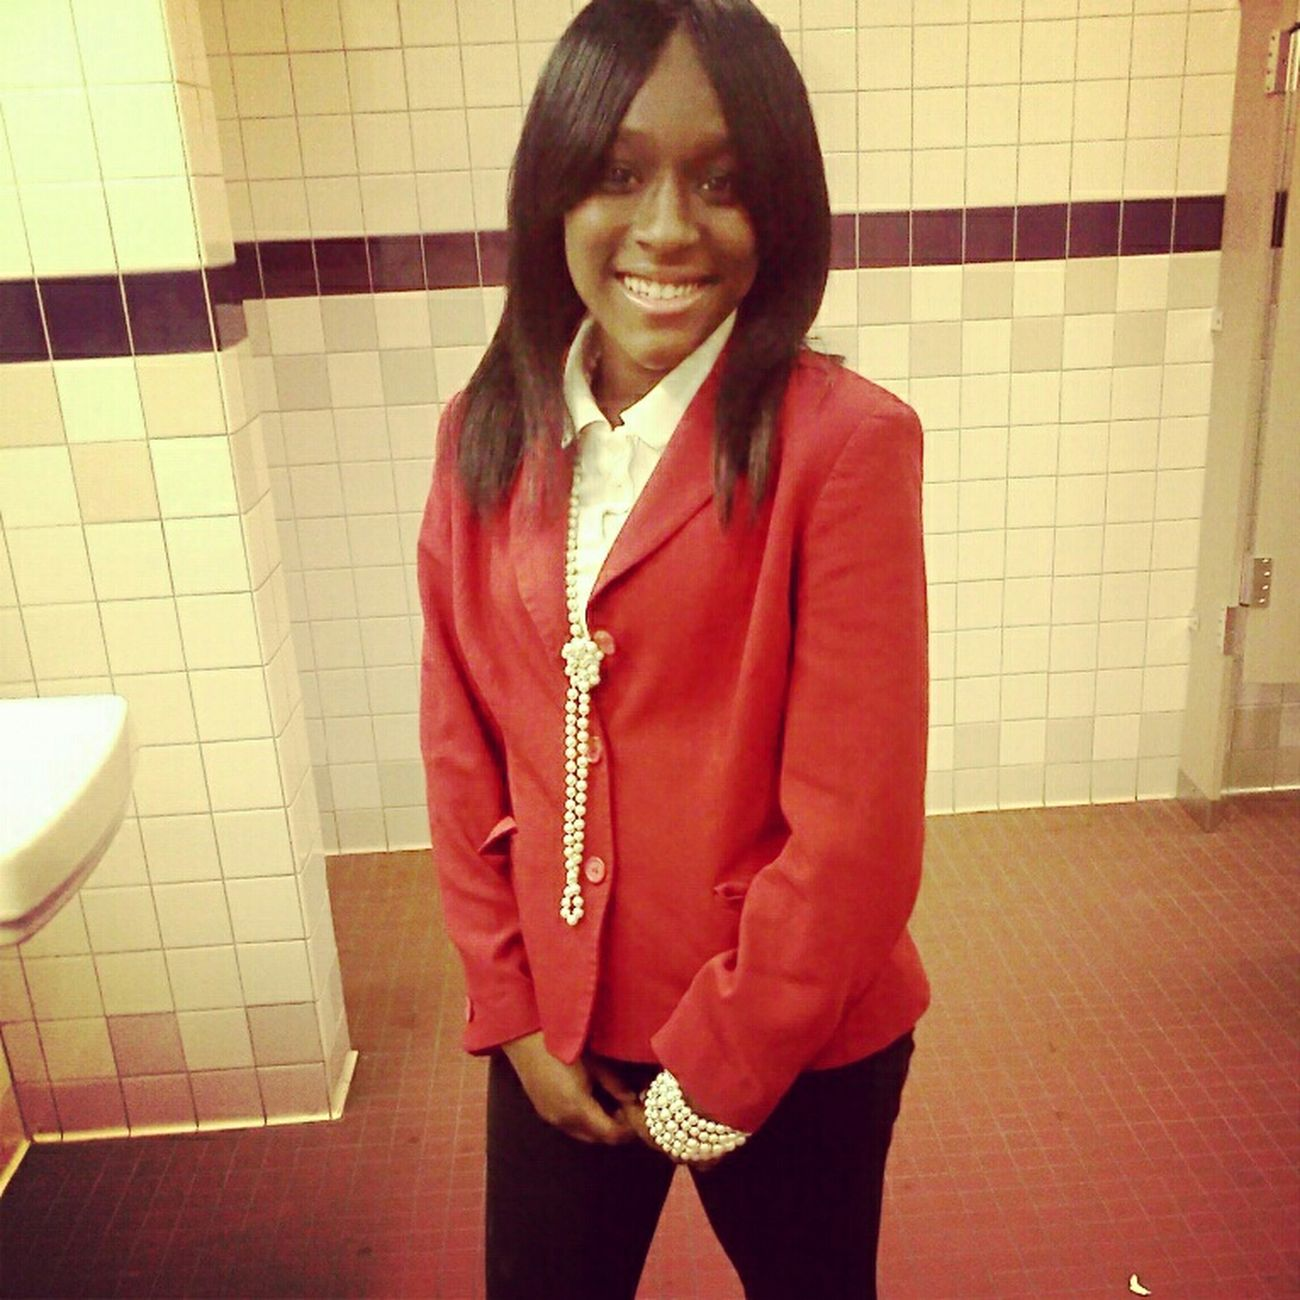 Yesterday at school